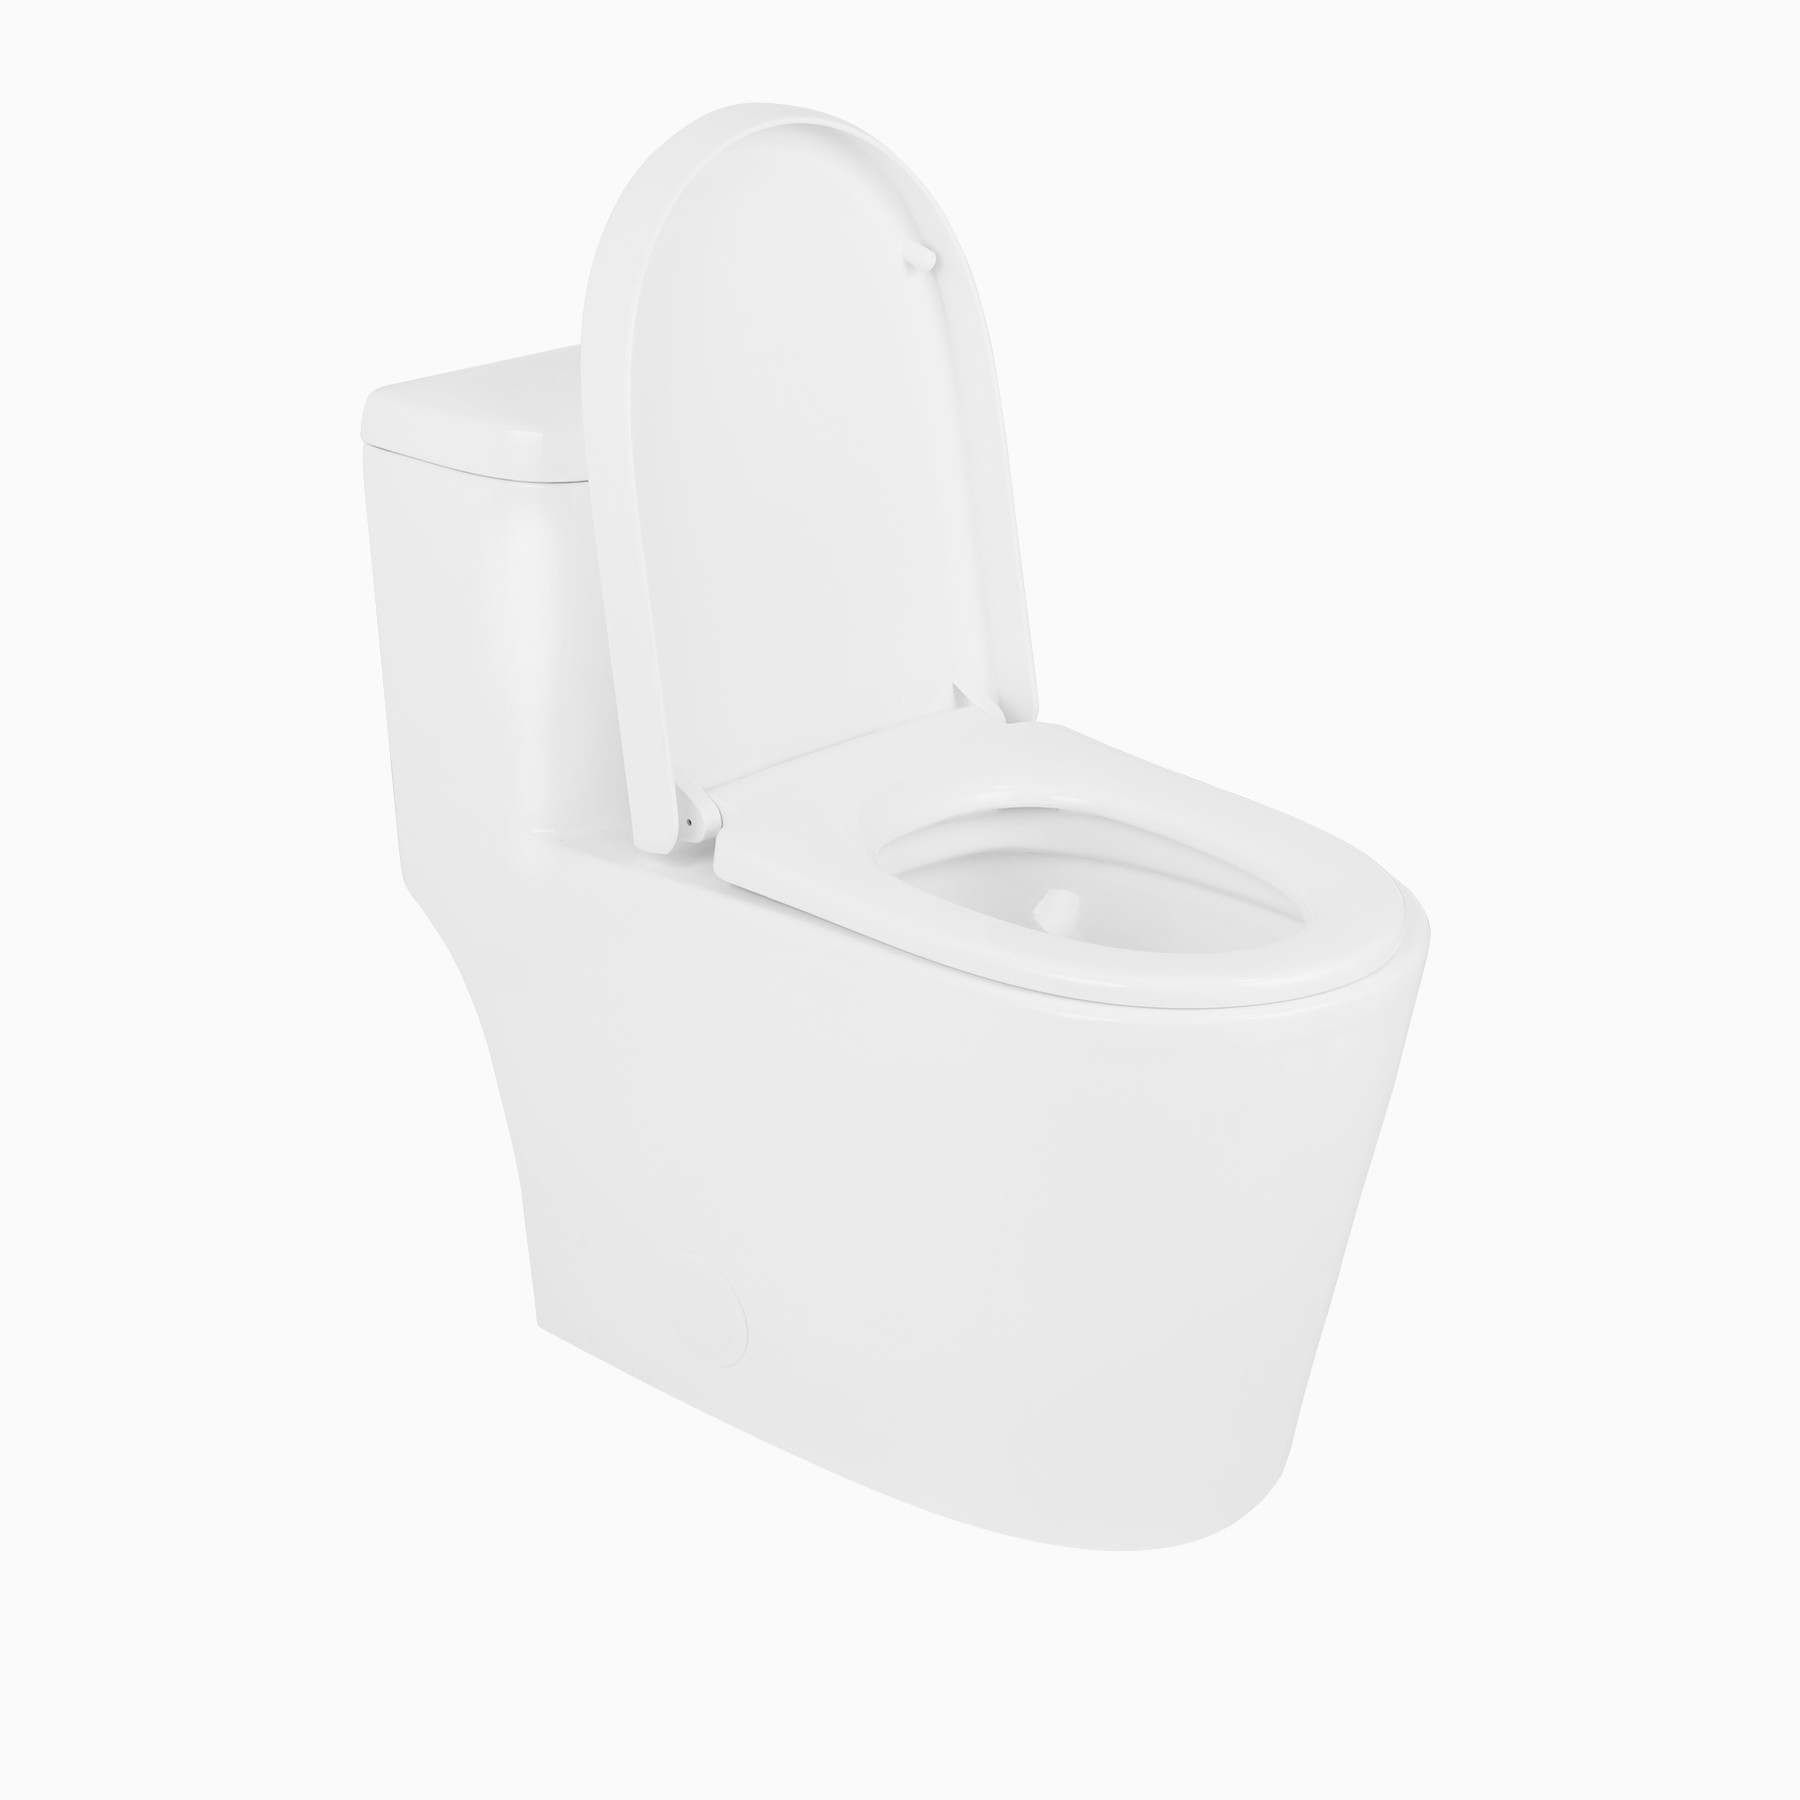 Bathroom Toilets - Bathroom Toilet Accessories for Sale - Buy Home ...